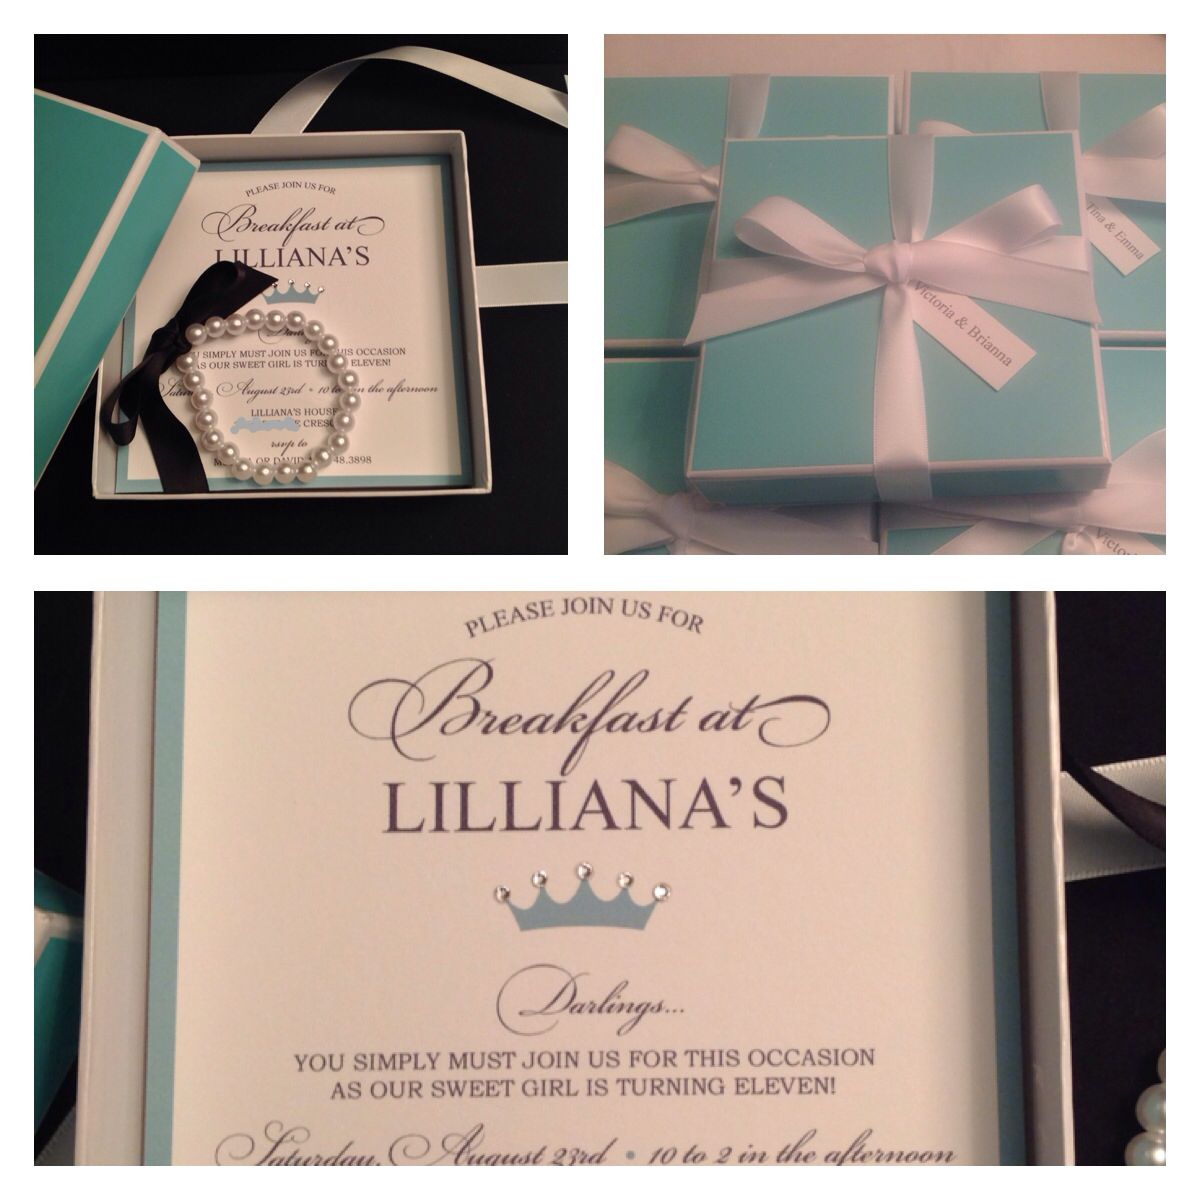 Breakfast at tiffanys tiffany co inspired invitation for my inspired invitation for my daughters 11th birthday boxes and ribbon from creative bag in the toronto area swarovski flatbacks from allbeads and 100 stopboris